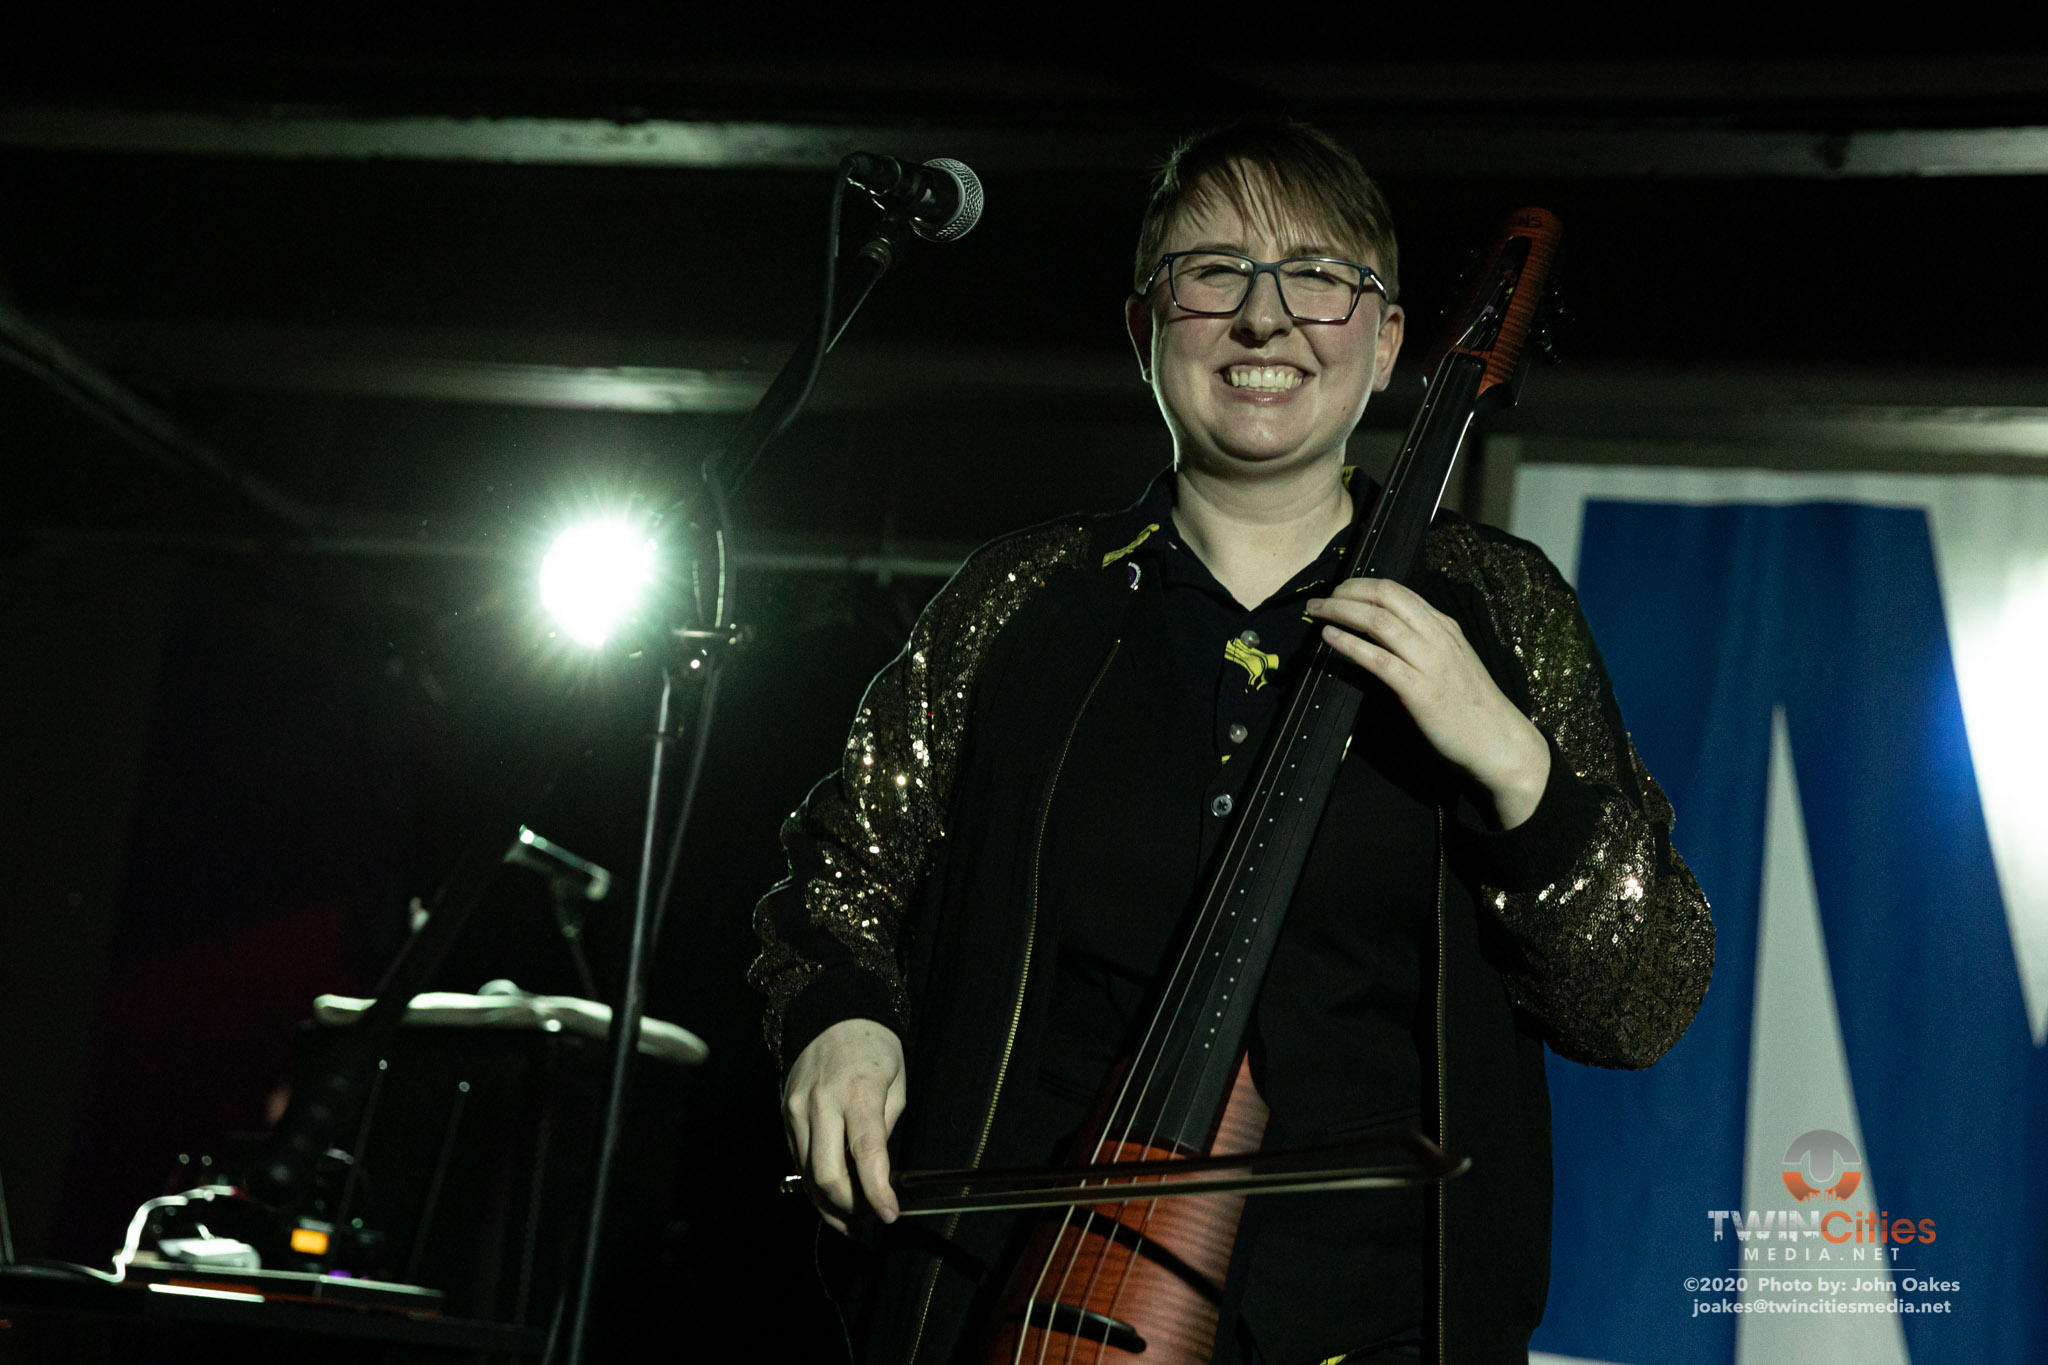 TheDoubleclicks12